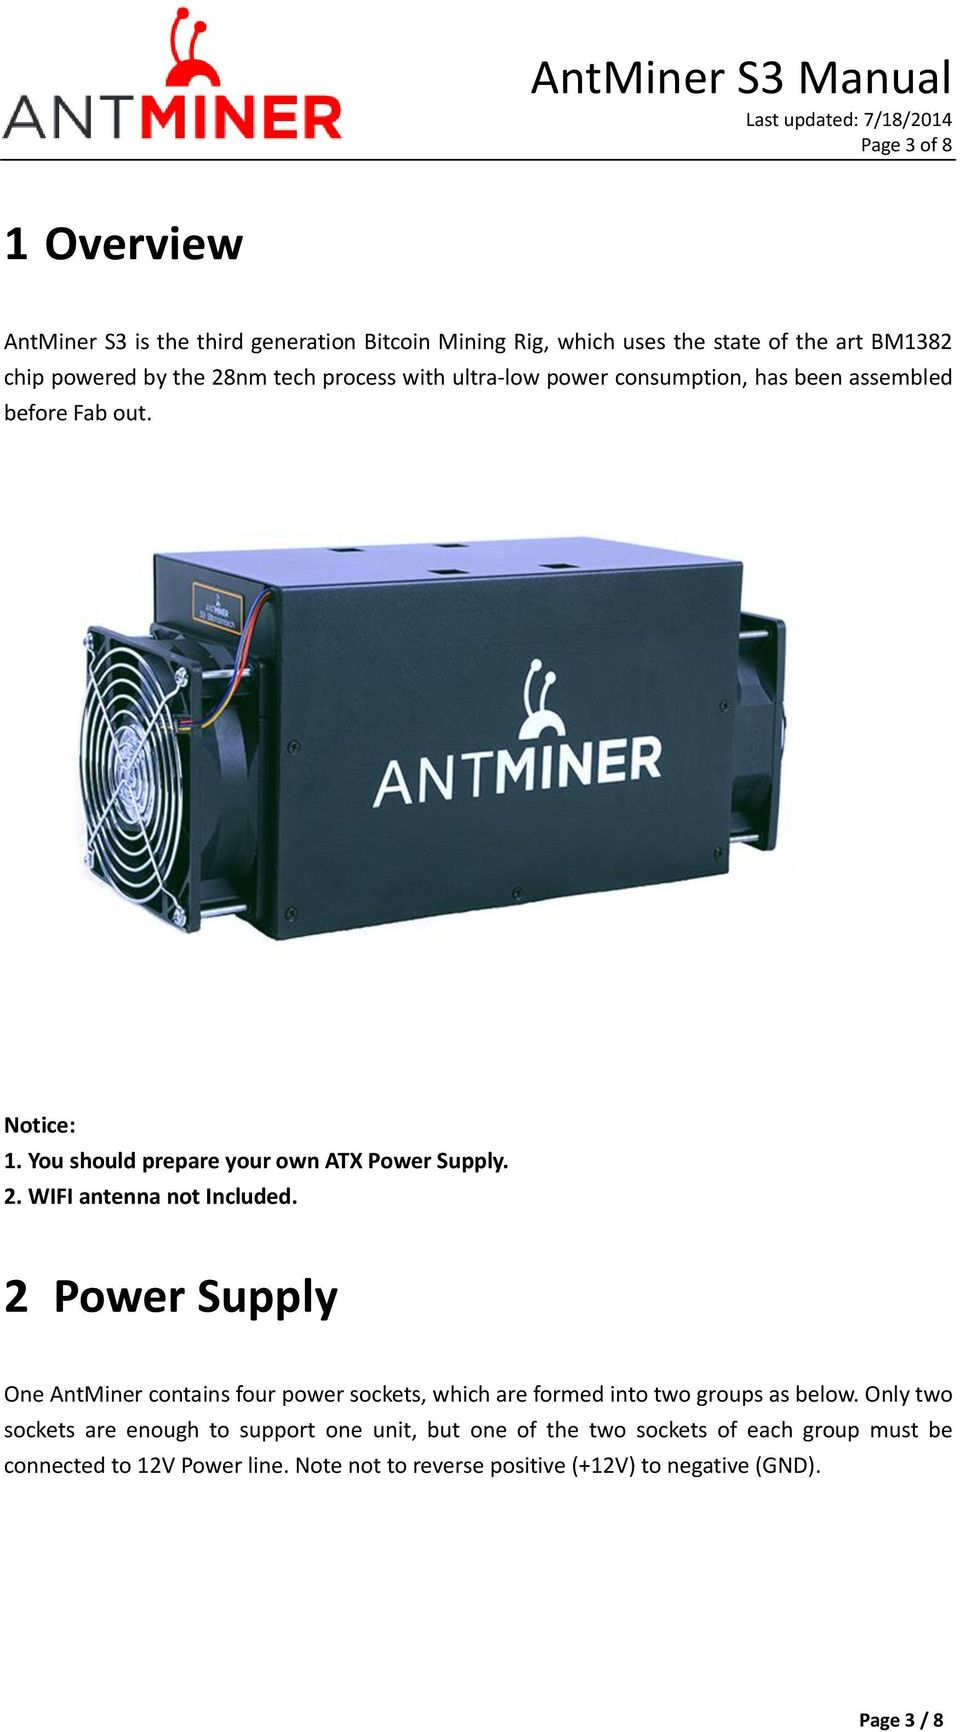 AntMiner S3 Manual Last updated: 7/18/2014 Page 2 of 8  Contents - PDF